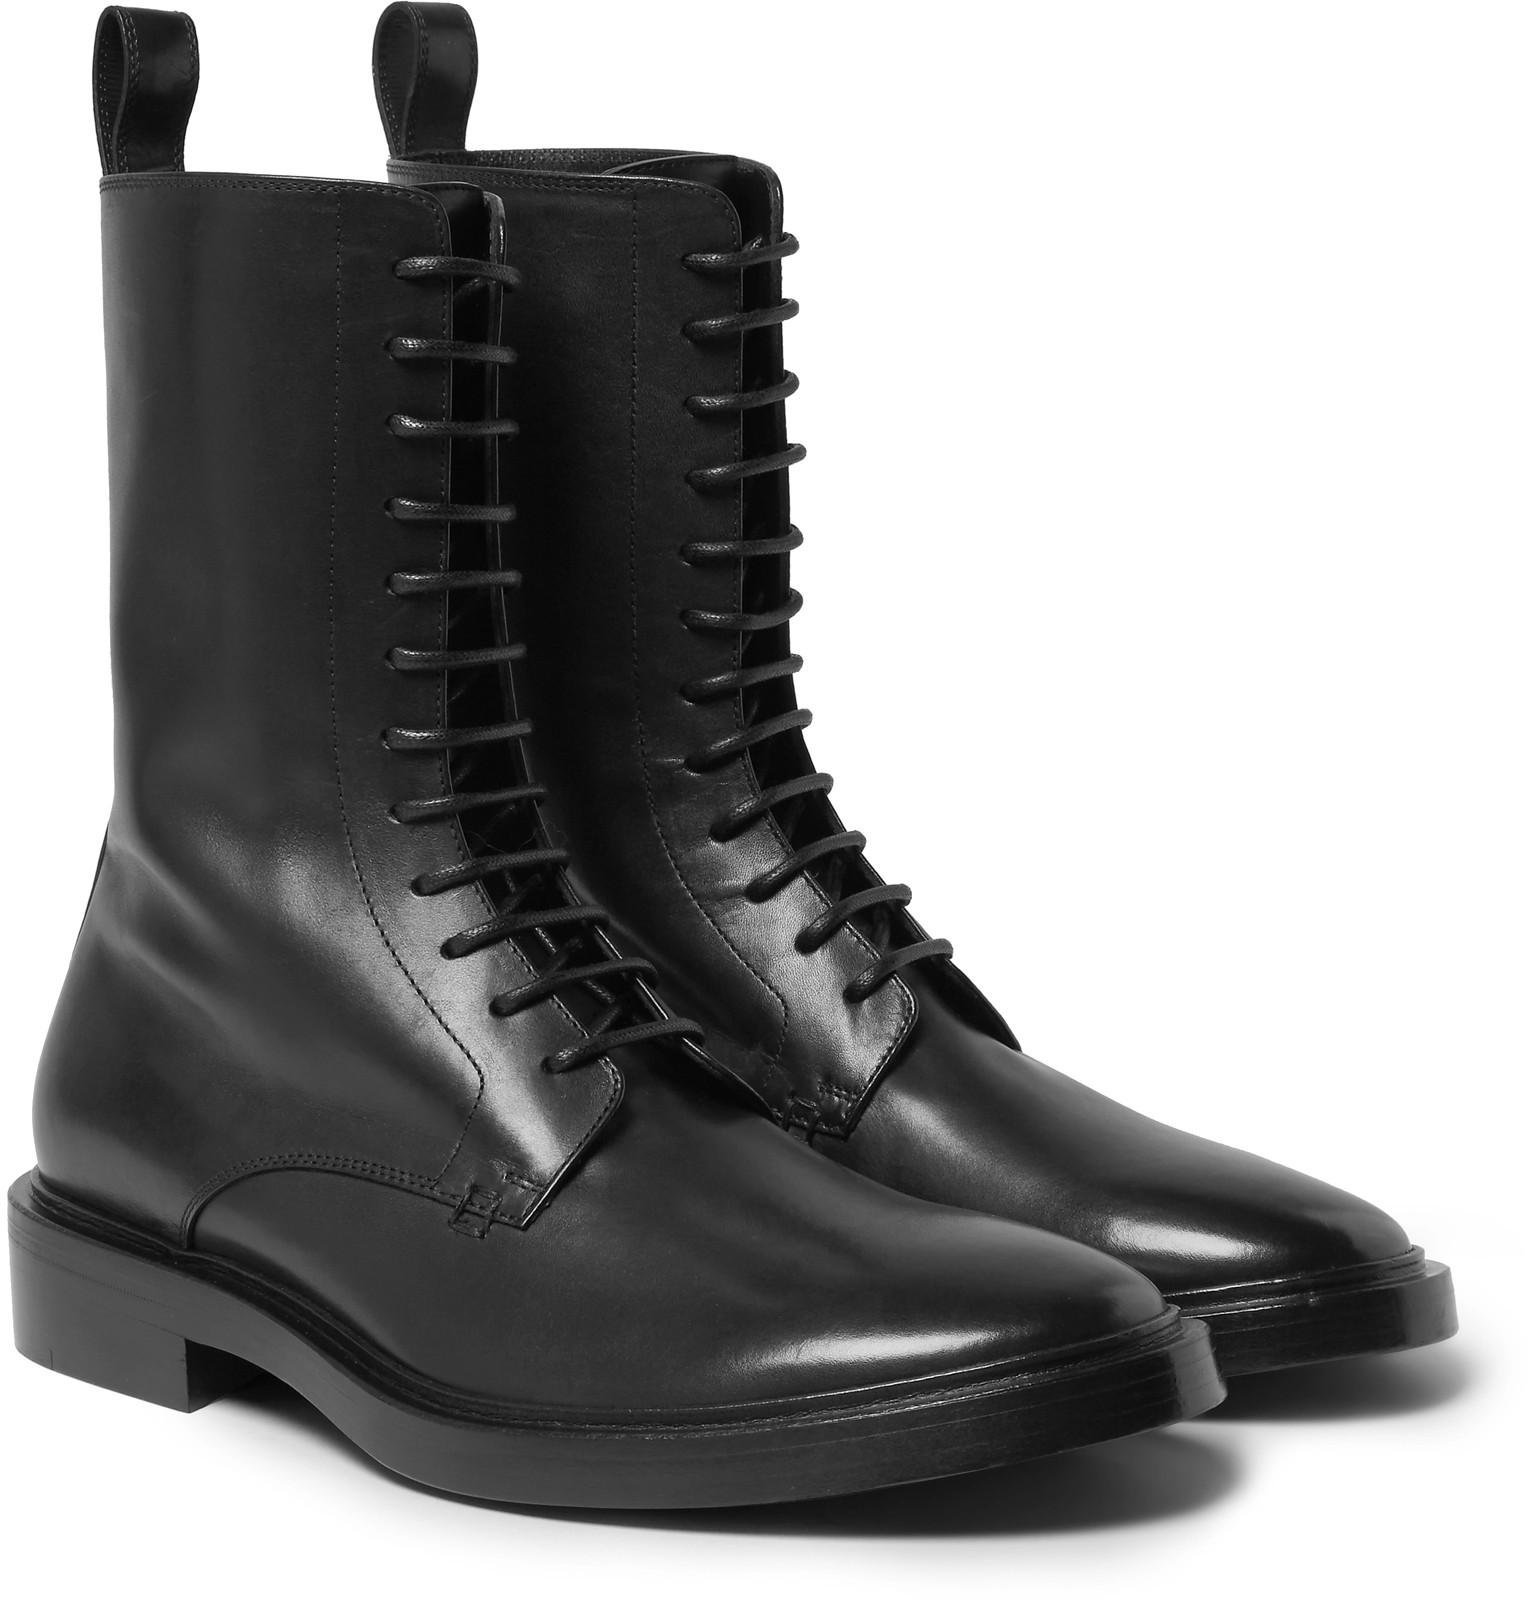 Balenciaga Leather Derby Combat Boots In Black For Men Lyst